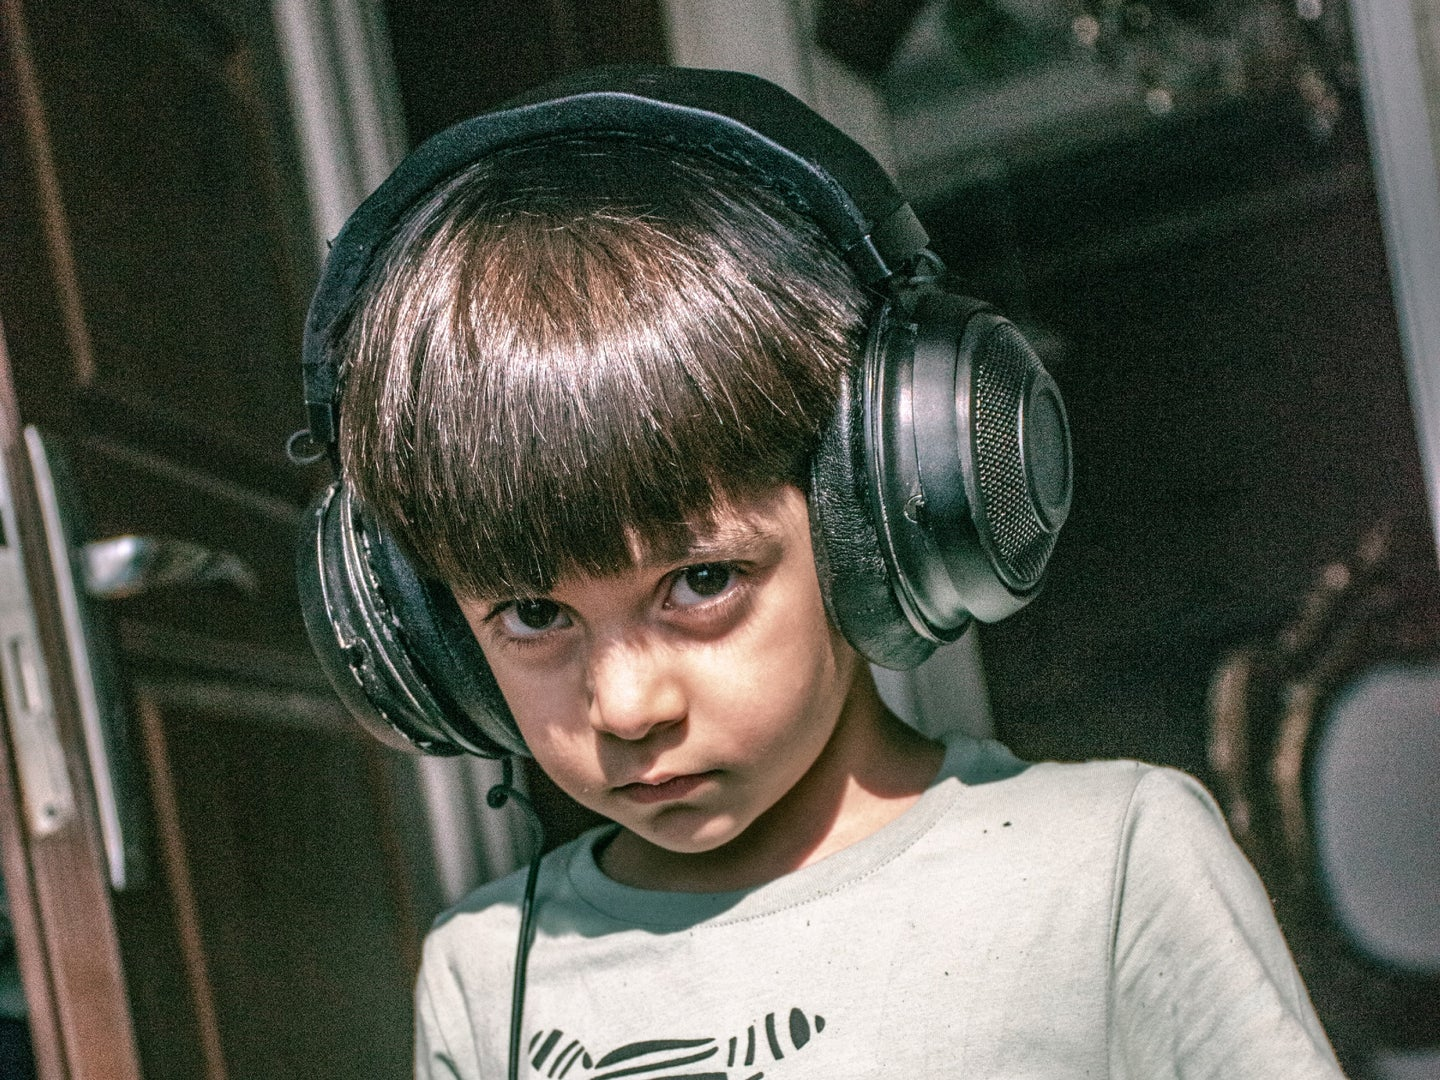 a child wearing large comfortable headphones